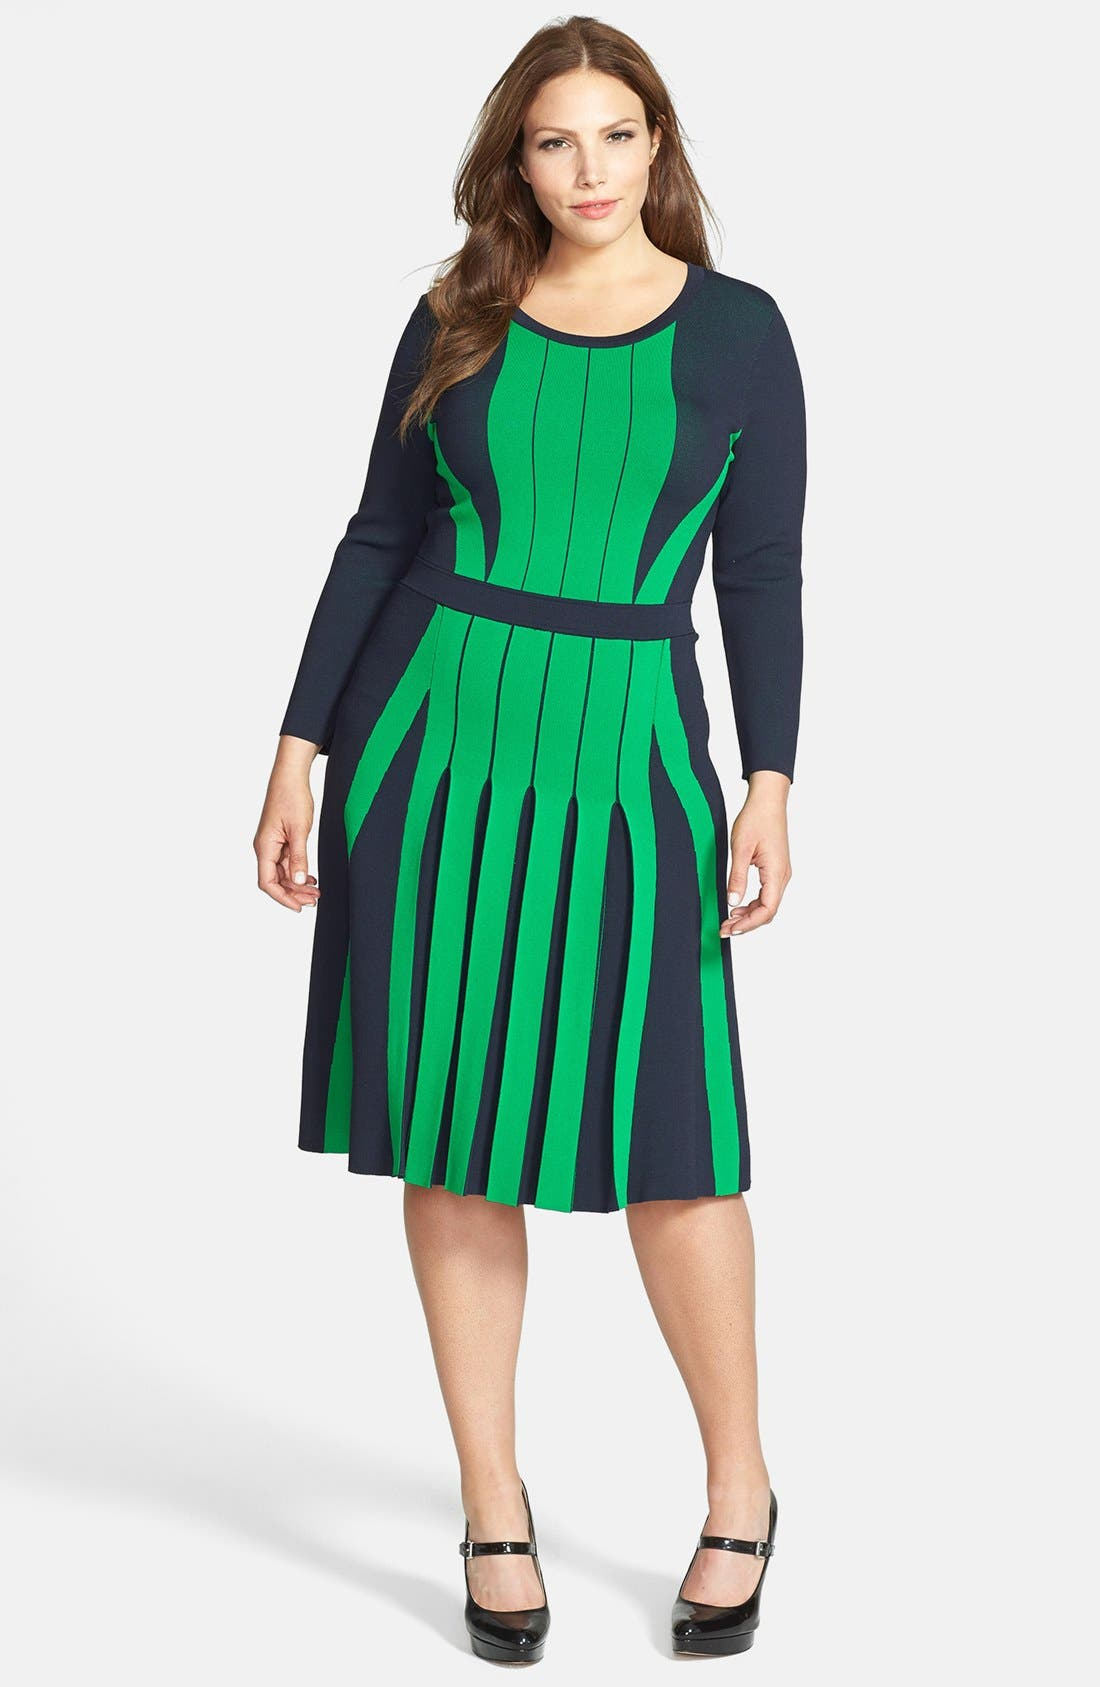 Alternate Image 1 Selected - MICHAEL Michael Kors Colorblock Pleated Fit & Flare Sweater Dress (Plus Size)